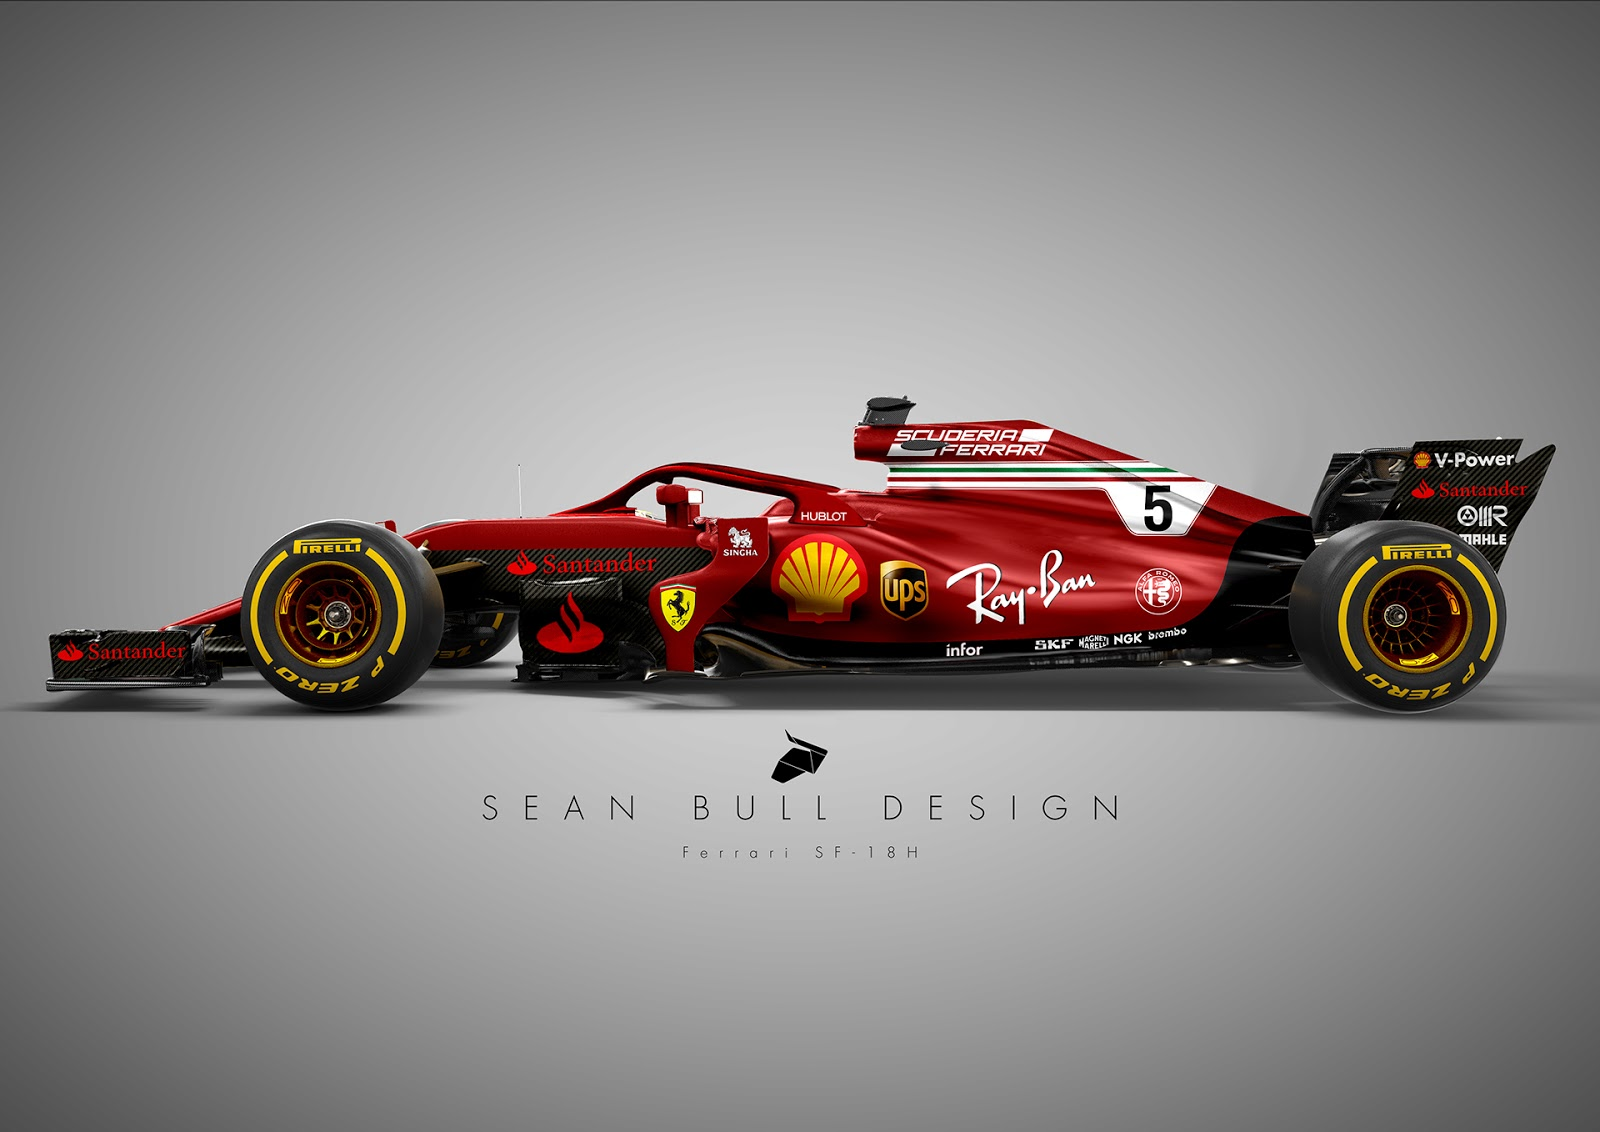 2018 F1 Liveries Could Make The Halo Look Almost